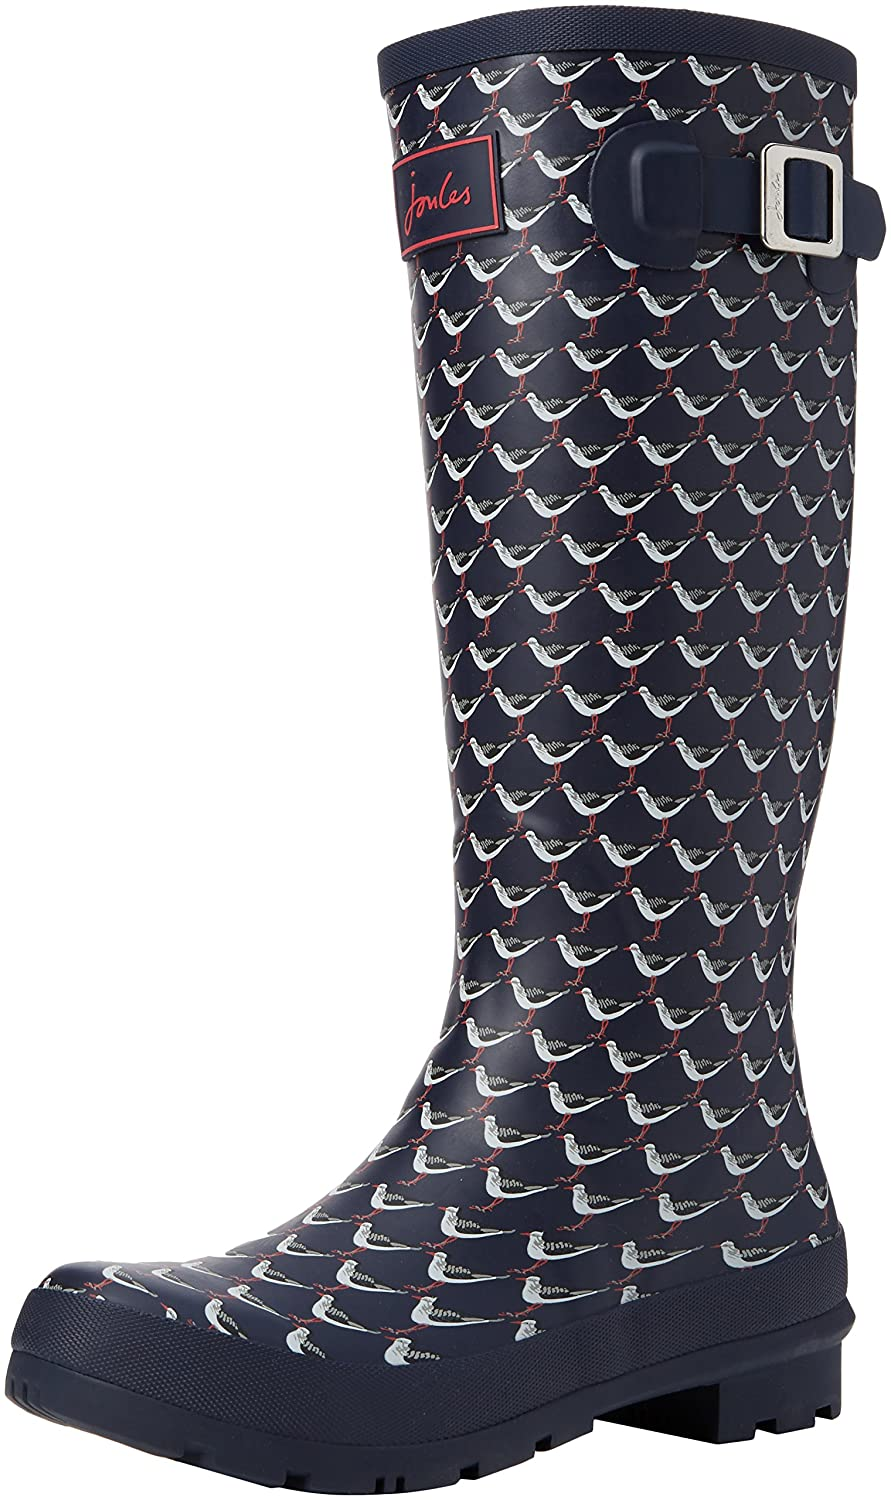 Joules Women's Welly Print Rain Boot B01M7UZNX8 10 B(M) US|French Navy Oyster Catcher